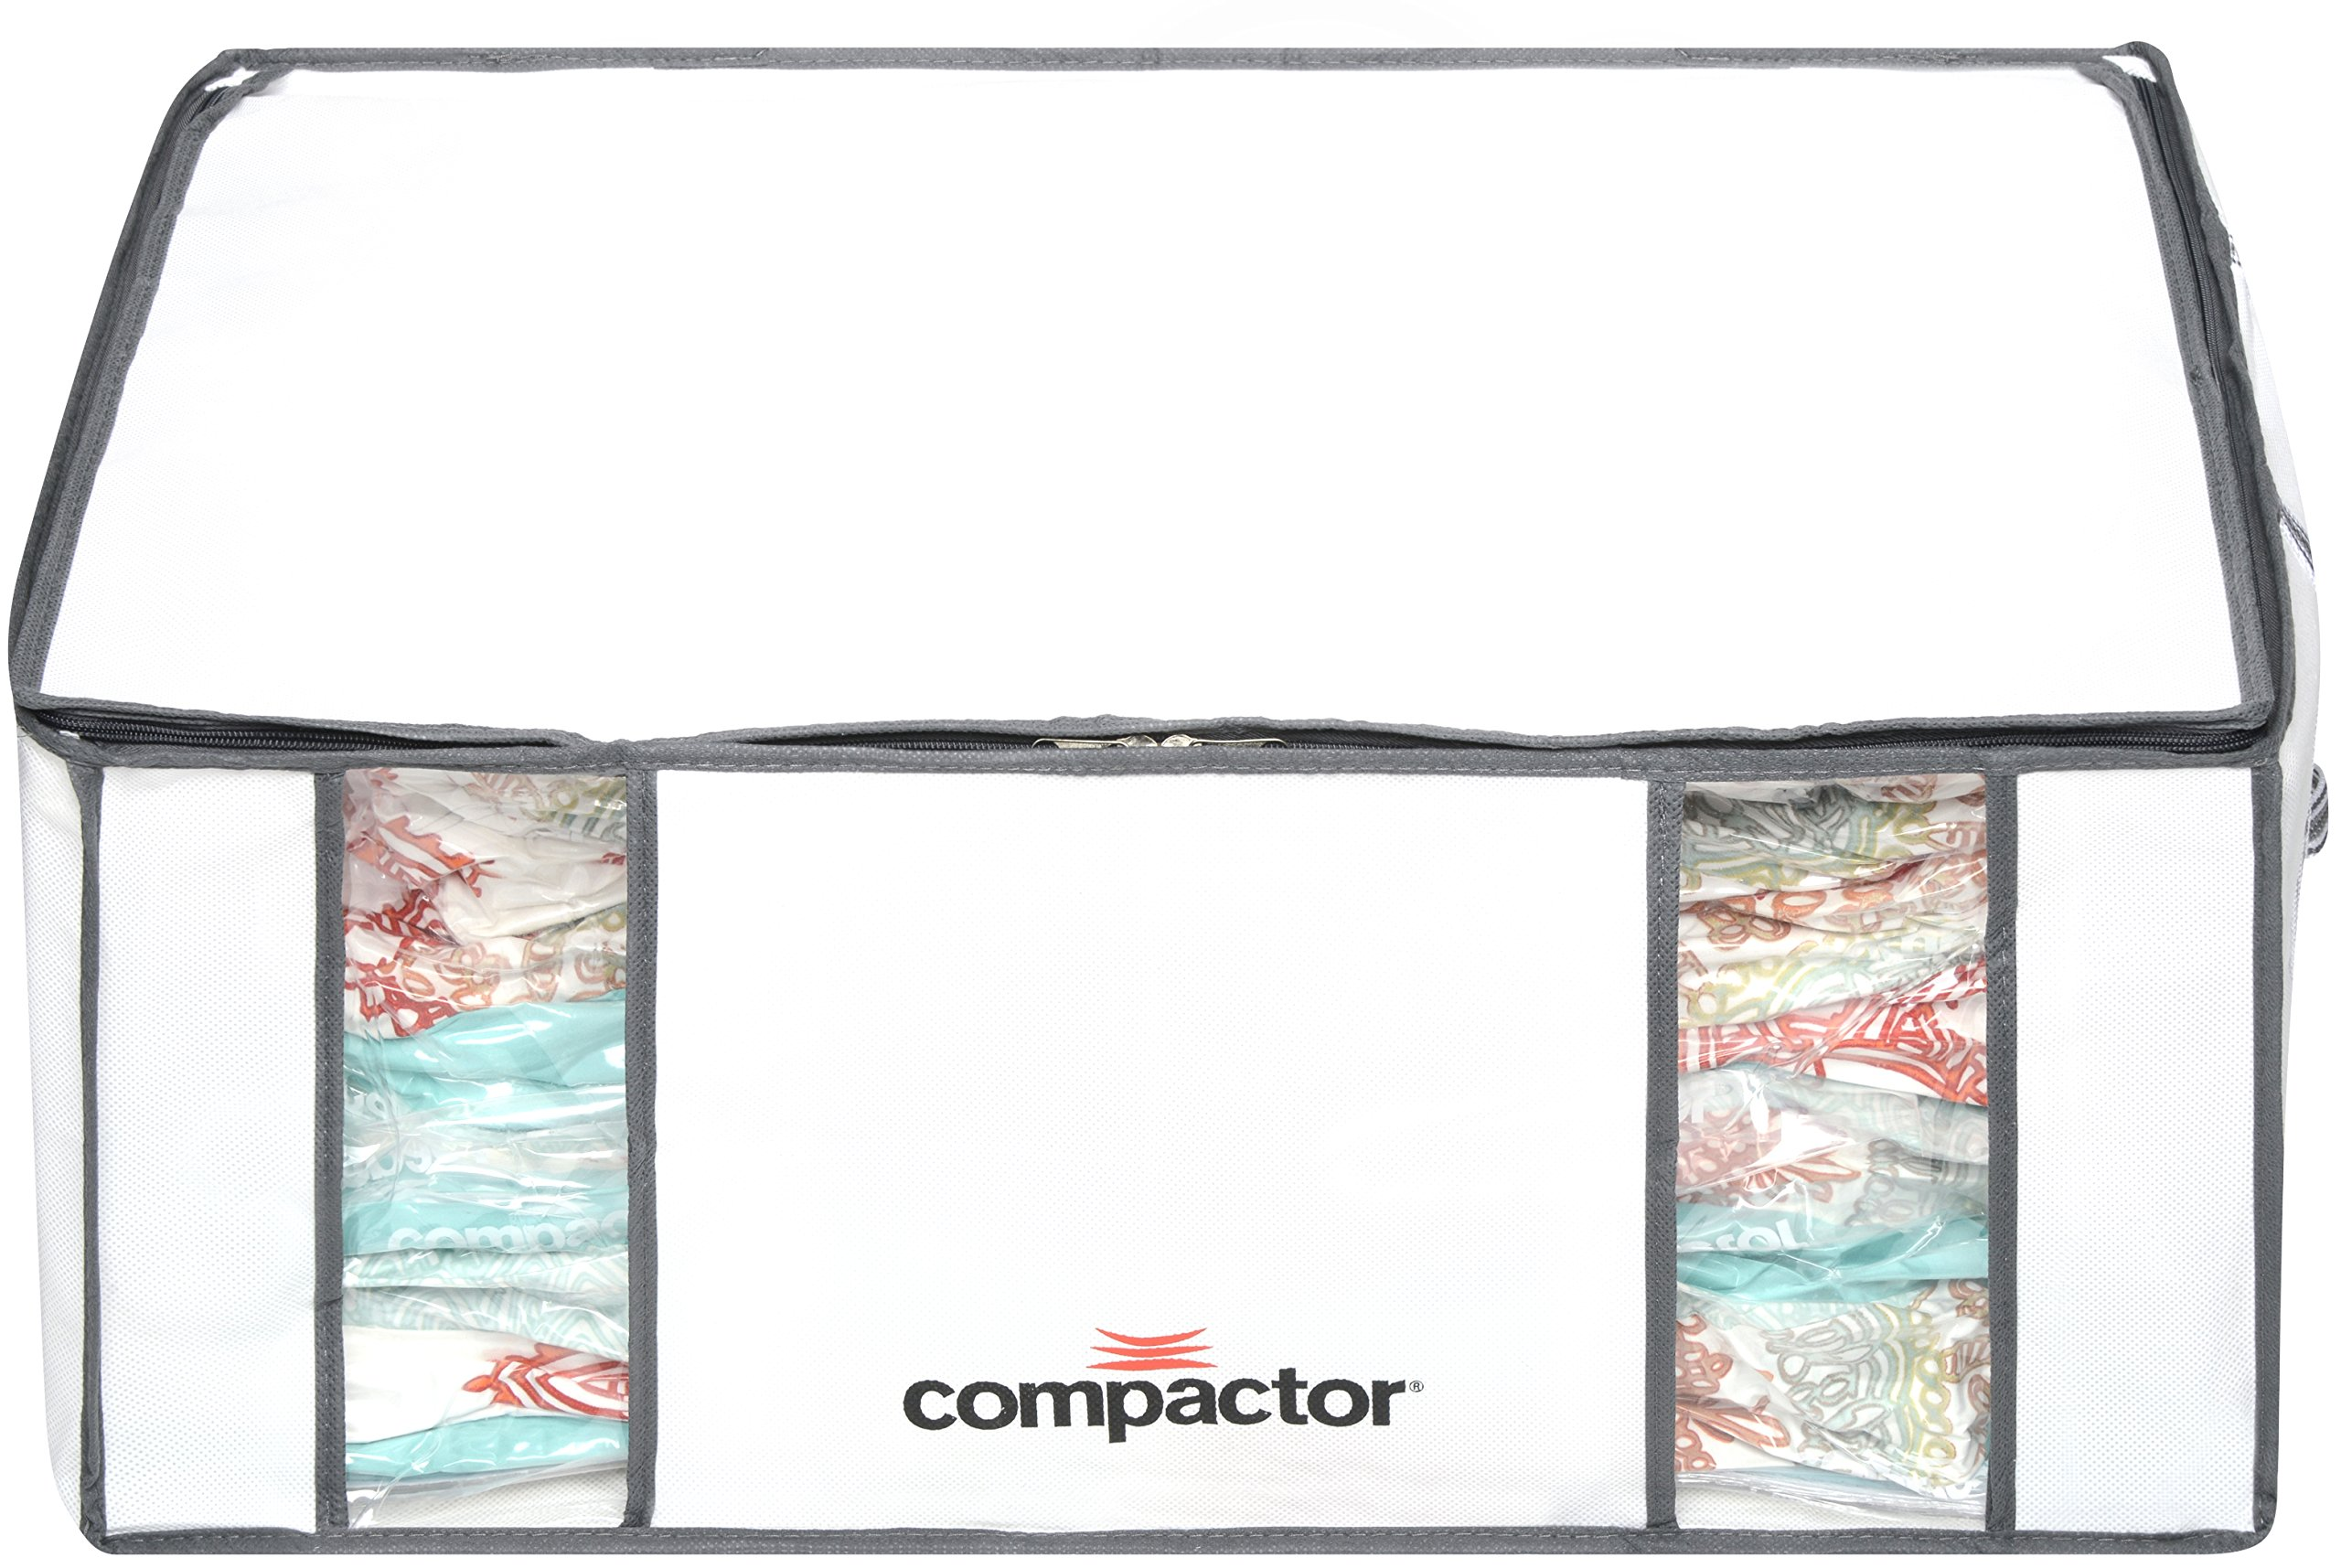 Compactor Space Saver Vacuum Storage Solution Vacuum Bag to Protect Clothes, Pillows, Duvets, Comforters, Blankets (XXL (26''x20''x11''), Classic White) by Compactor (Image #2)